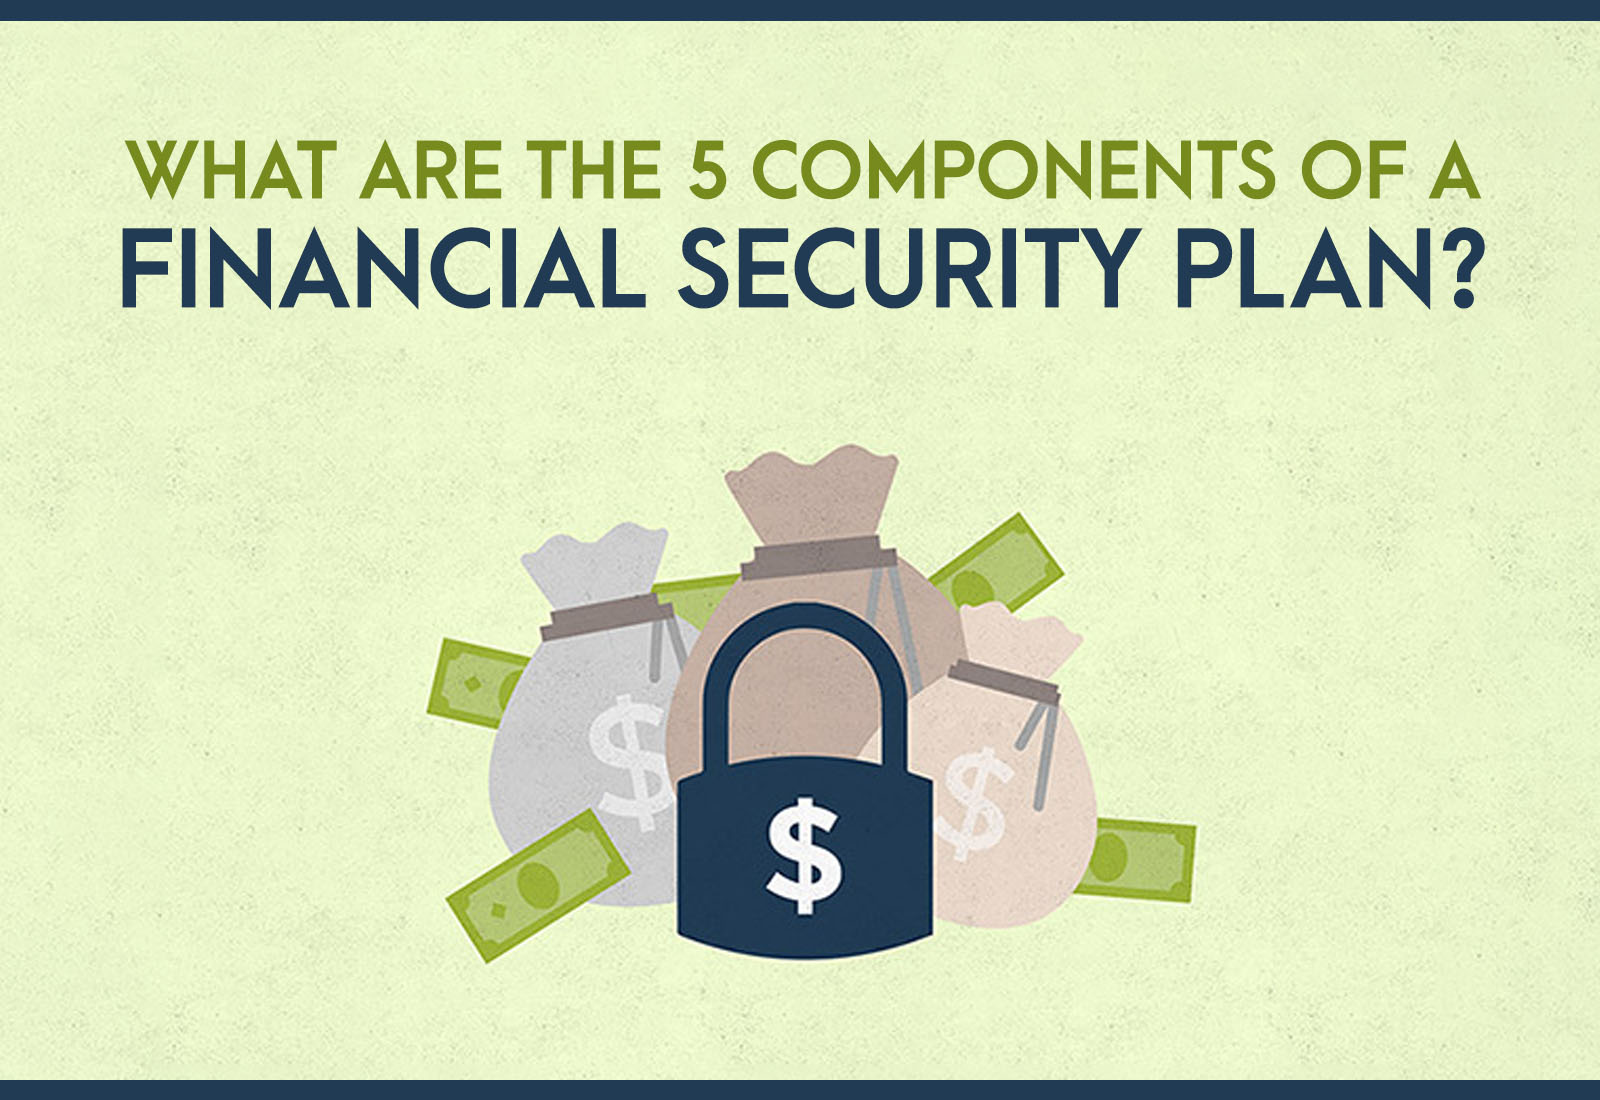 What Are The 5 Components of a Financial Security Plan?